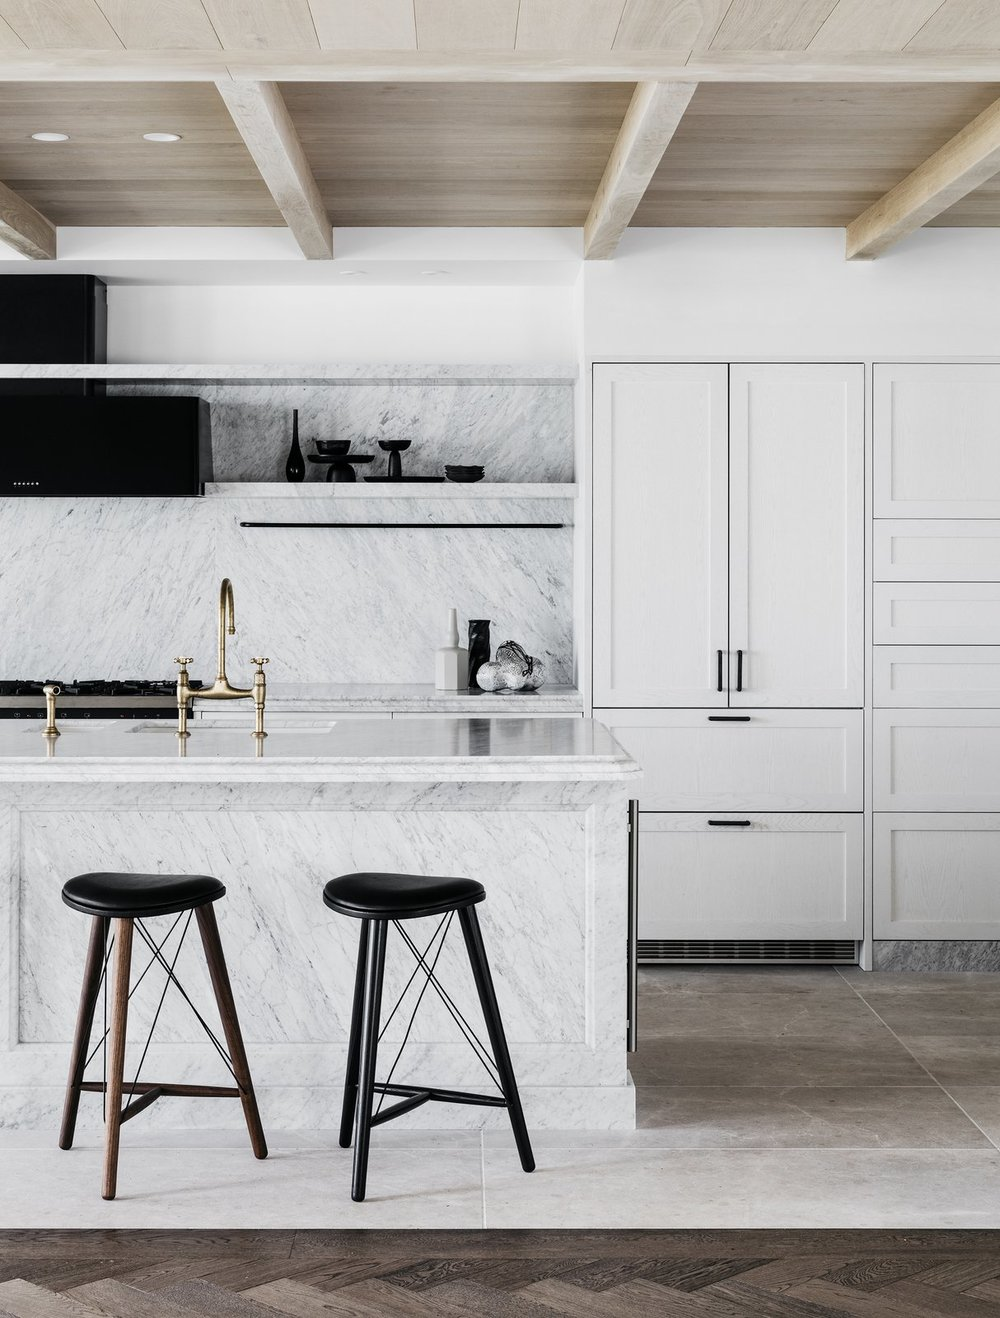 The monochromatic kitchen of the holiday villa evokes a calming mood.  Photo by Felix Forest